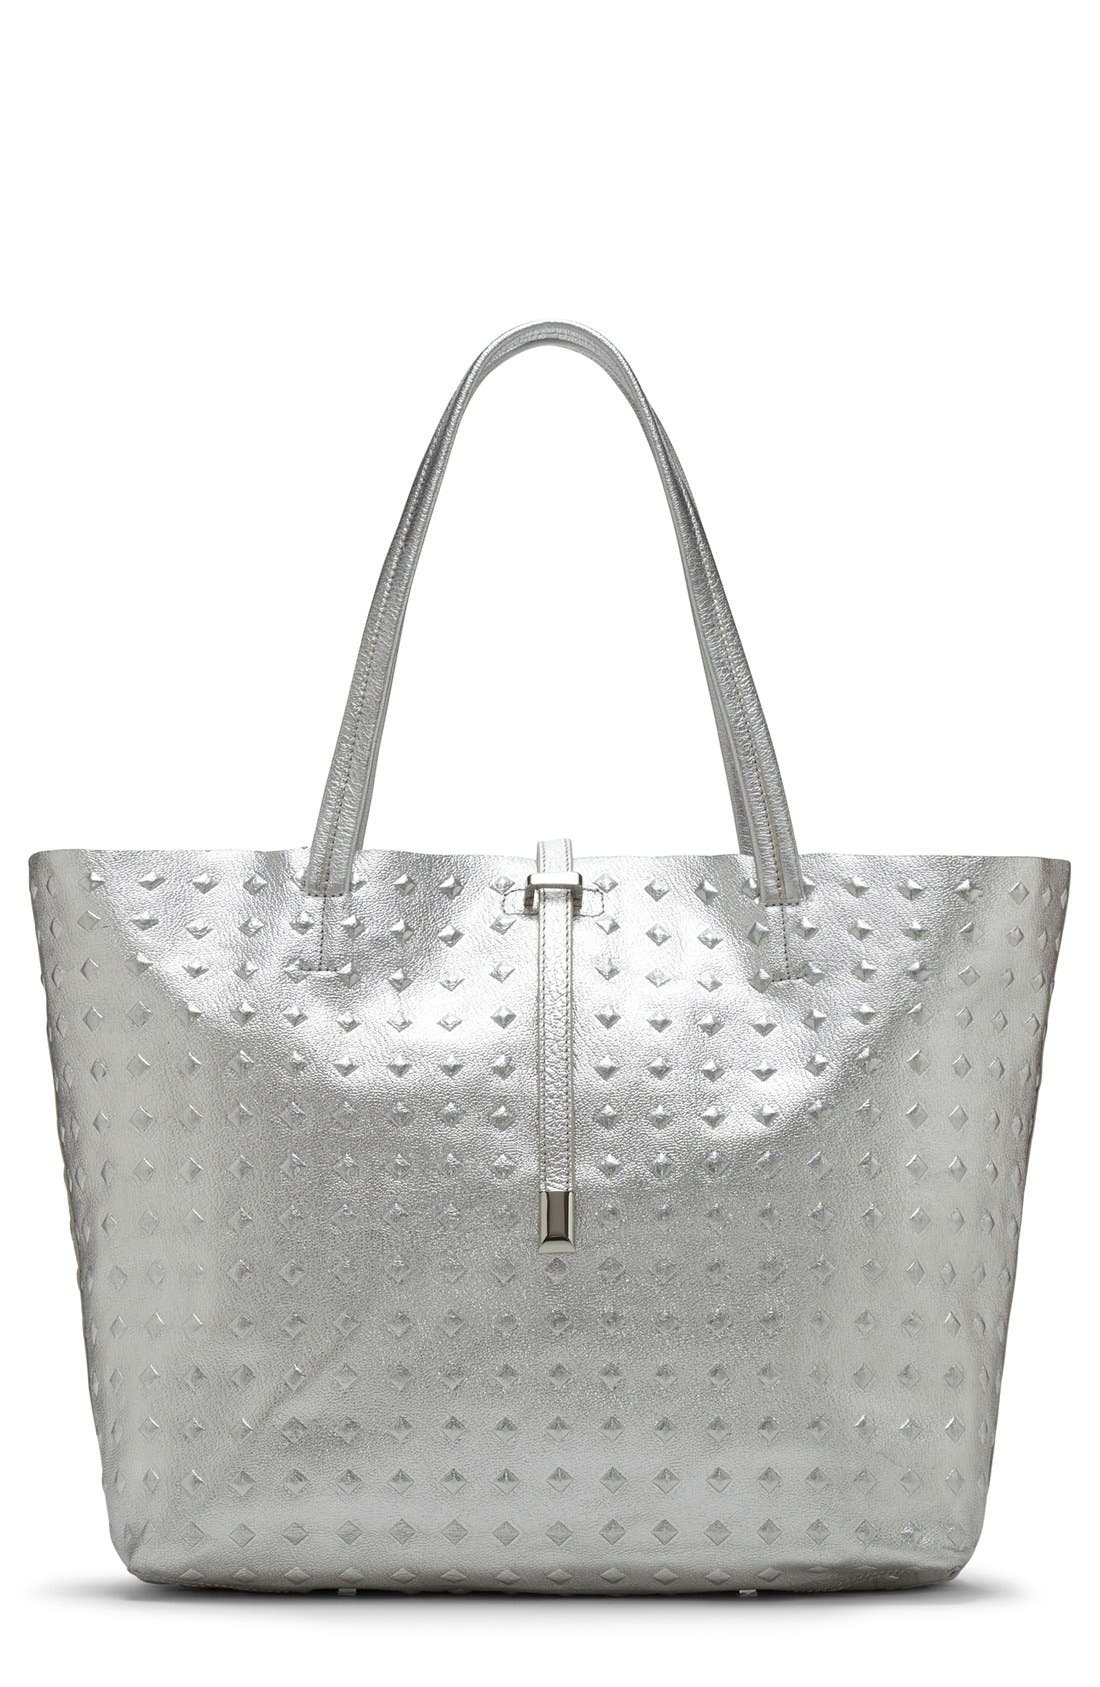 Main Image - Vince Camuto 'Leila' Tote